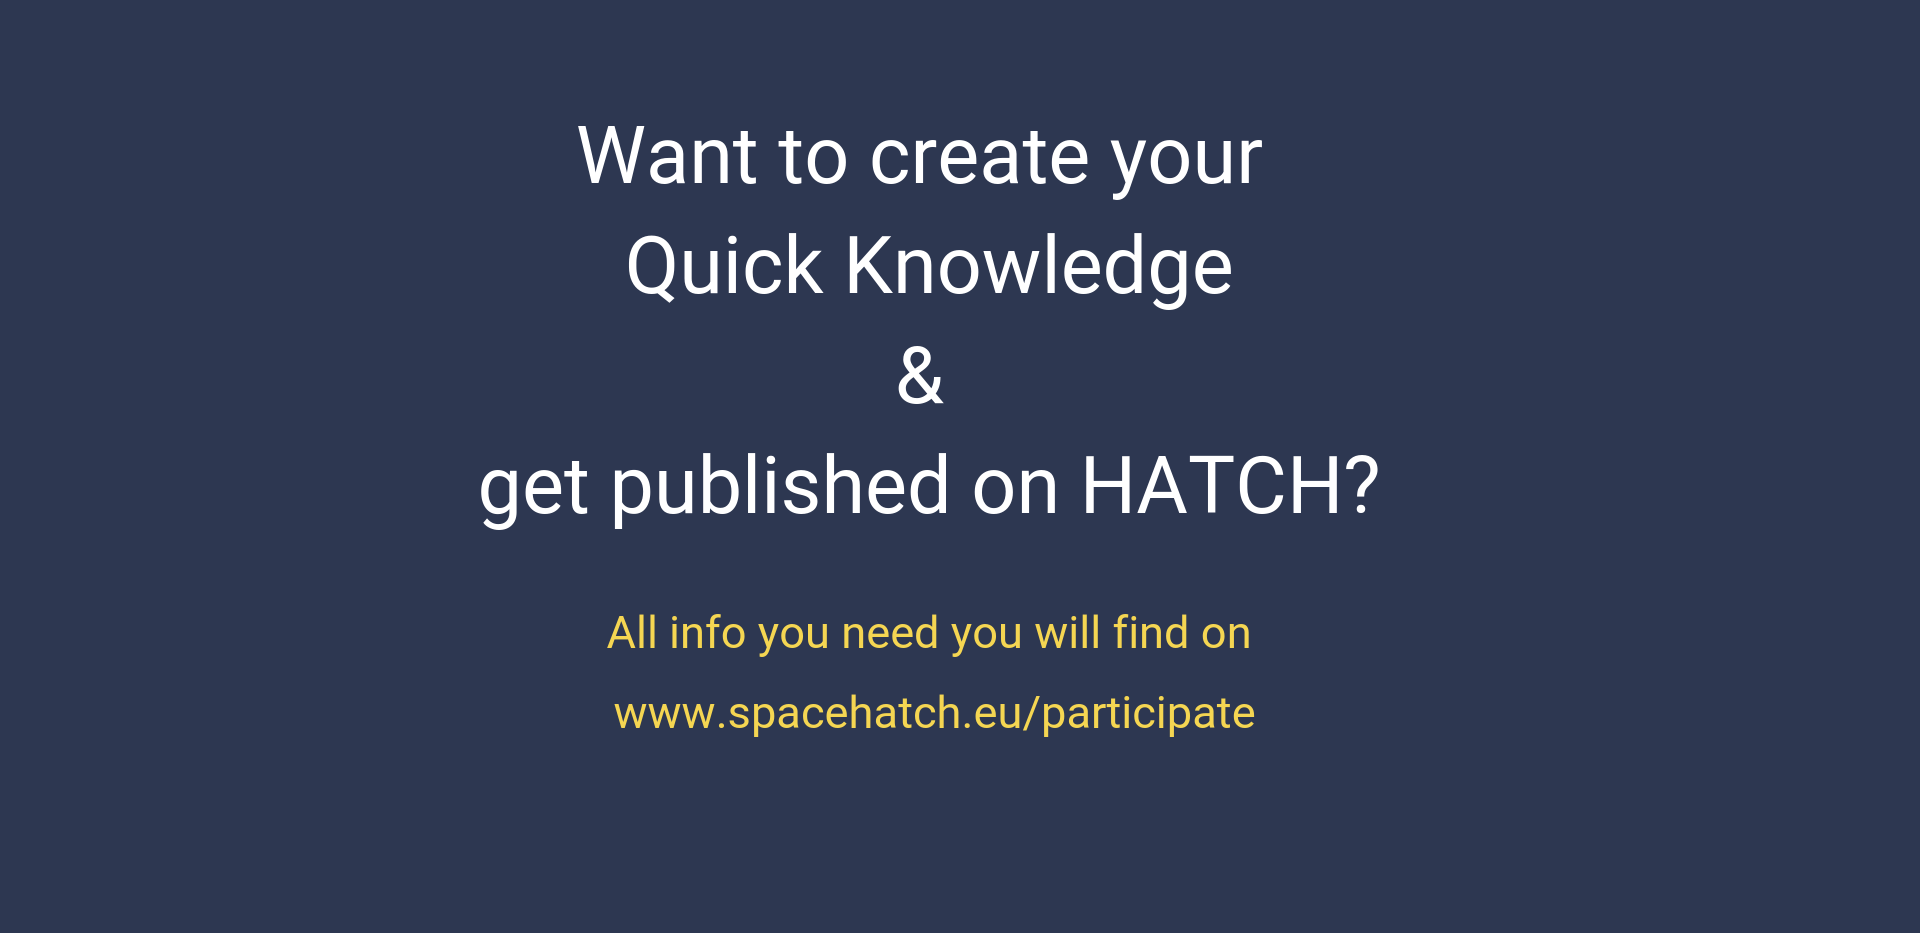 Quick Knowledge on HATCH